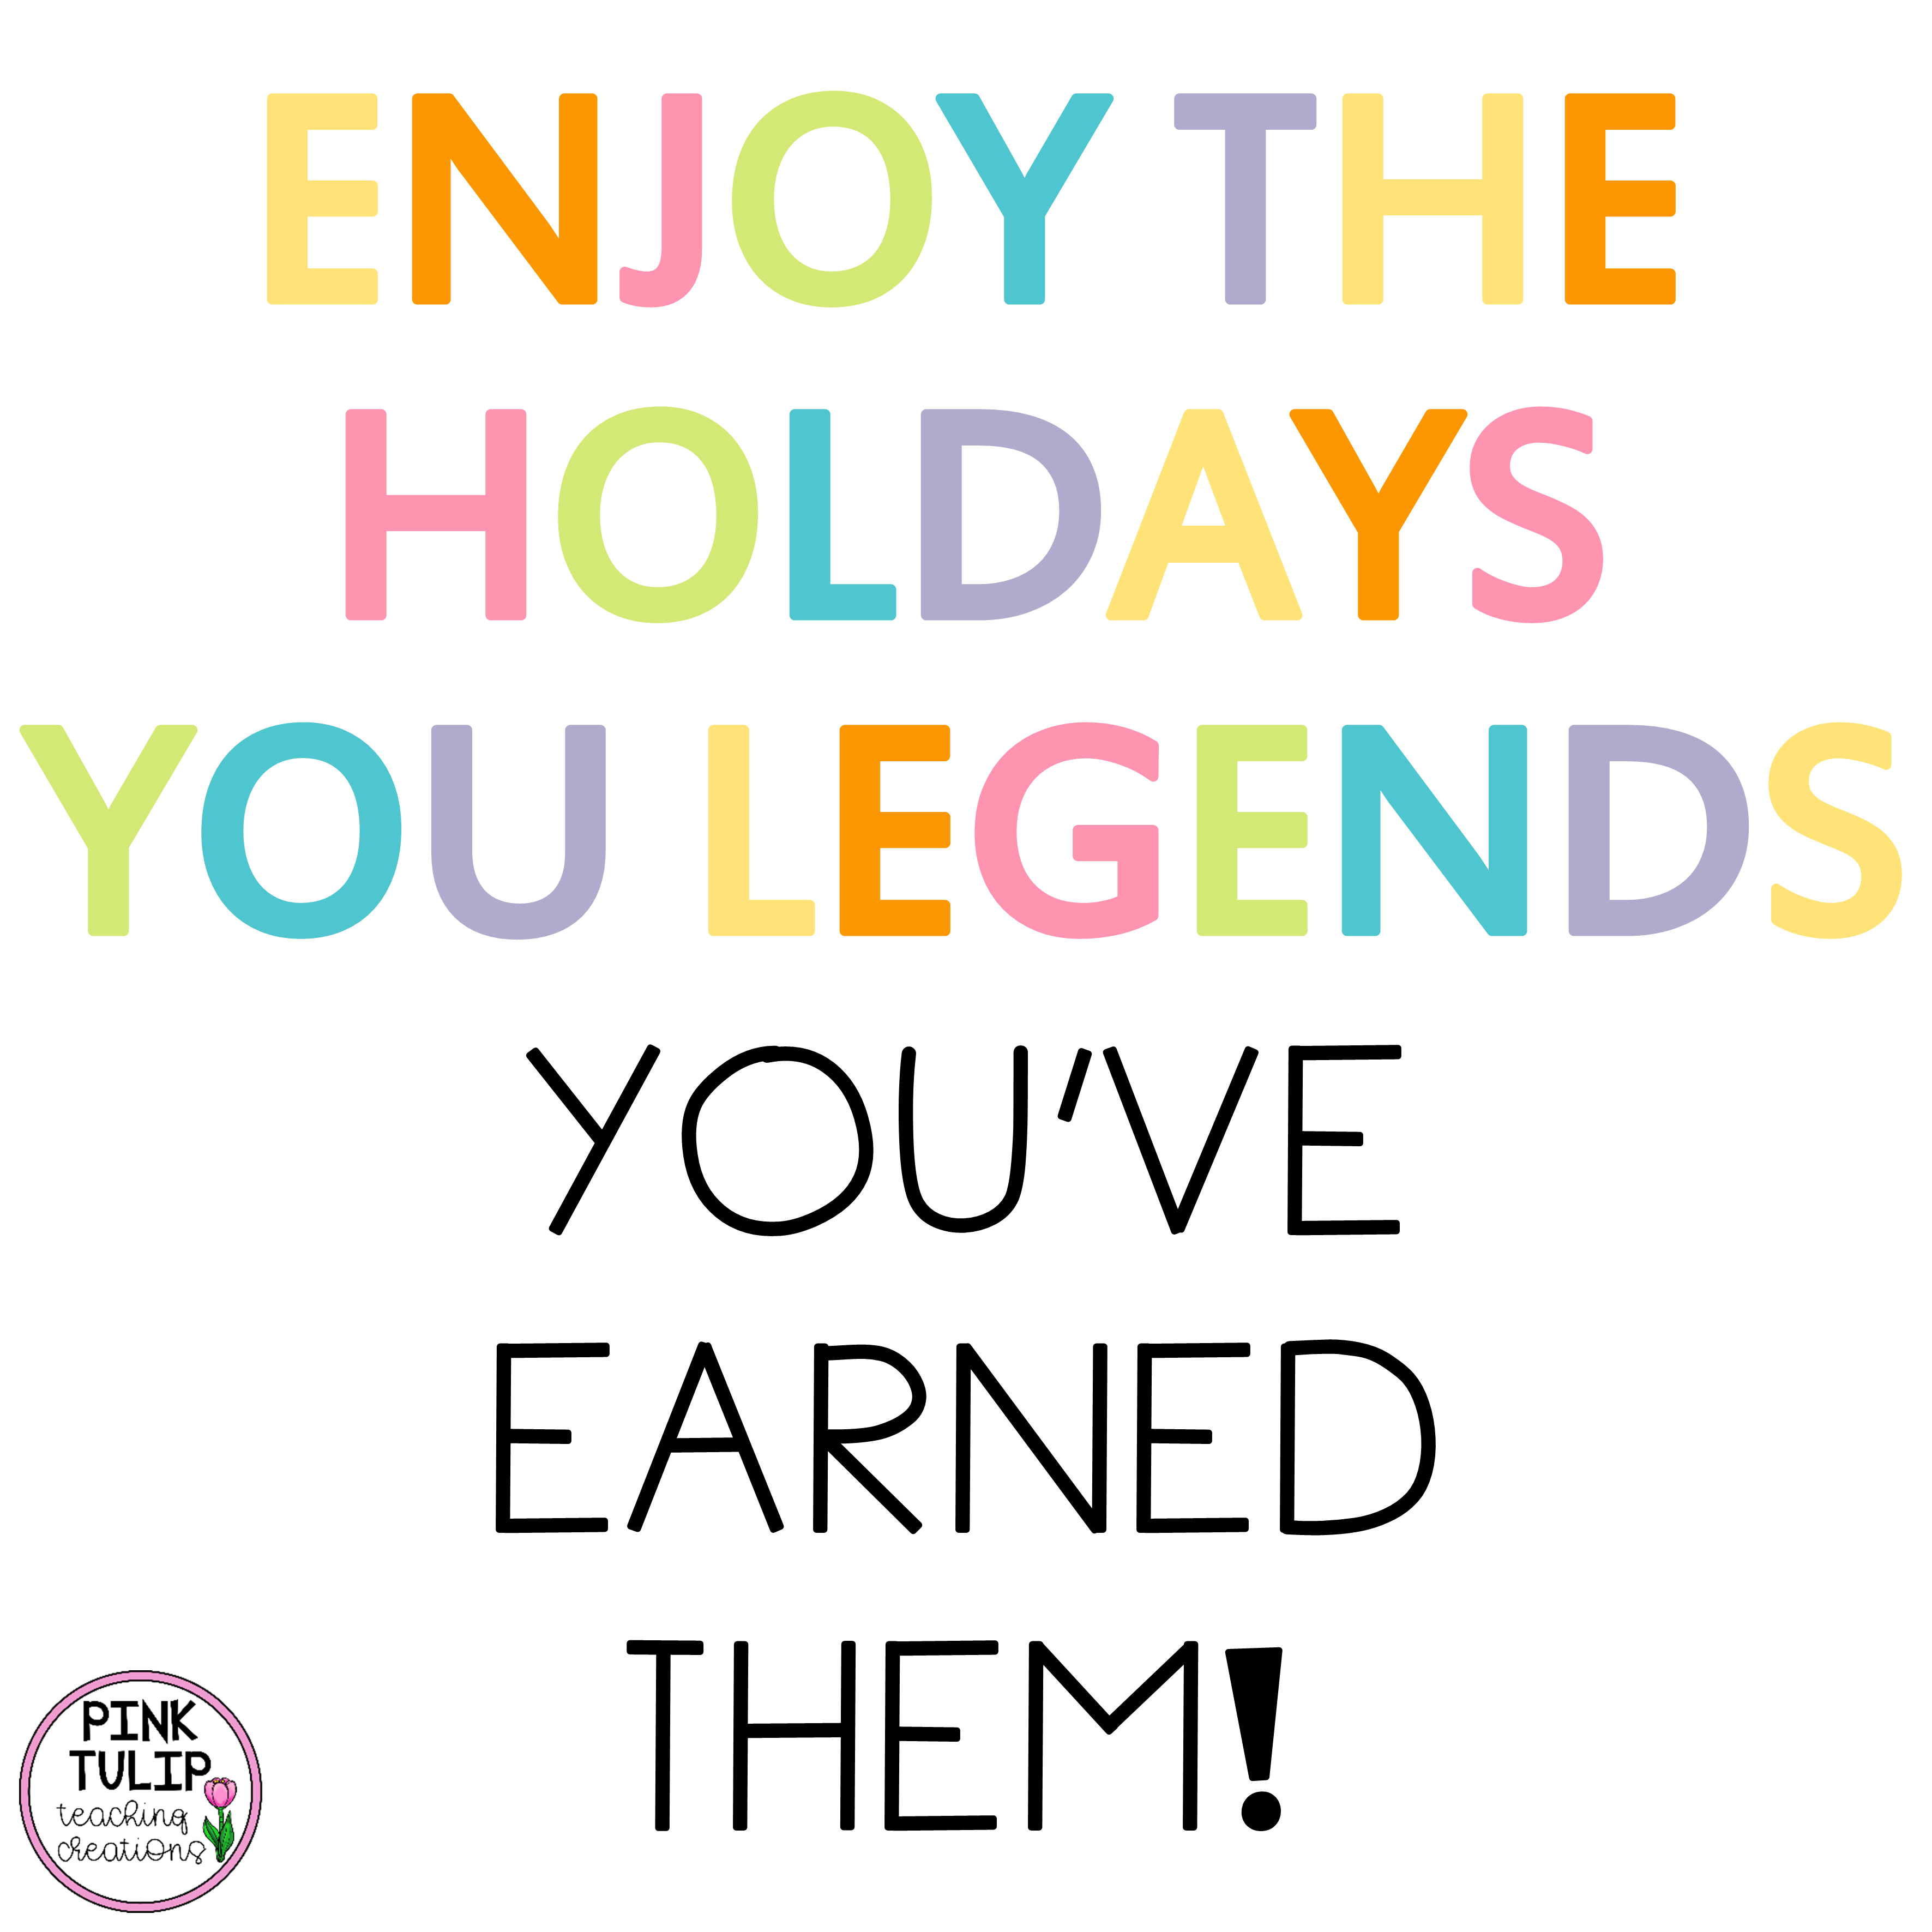 Enjoy The Holidays You Legends Pink Tulip Creations